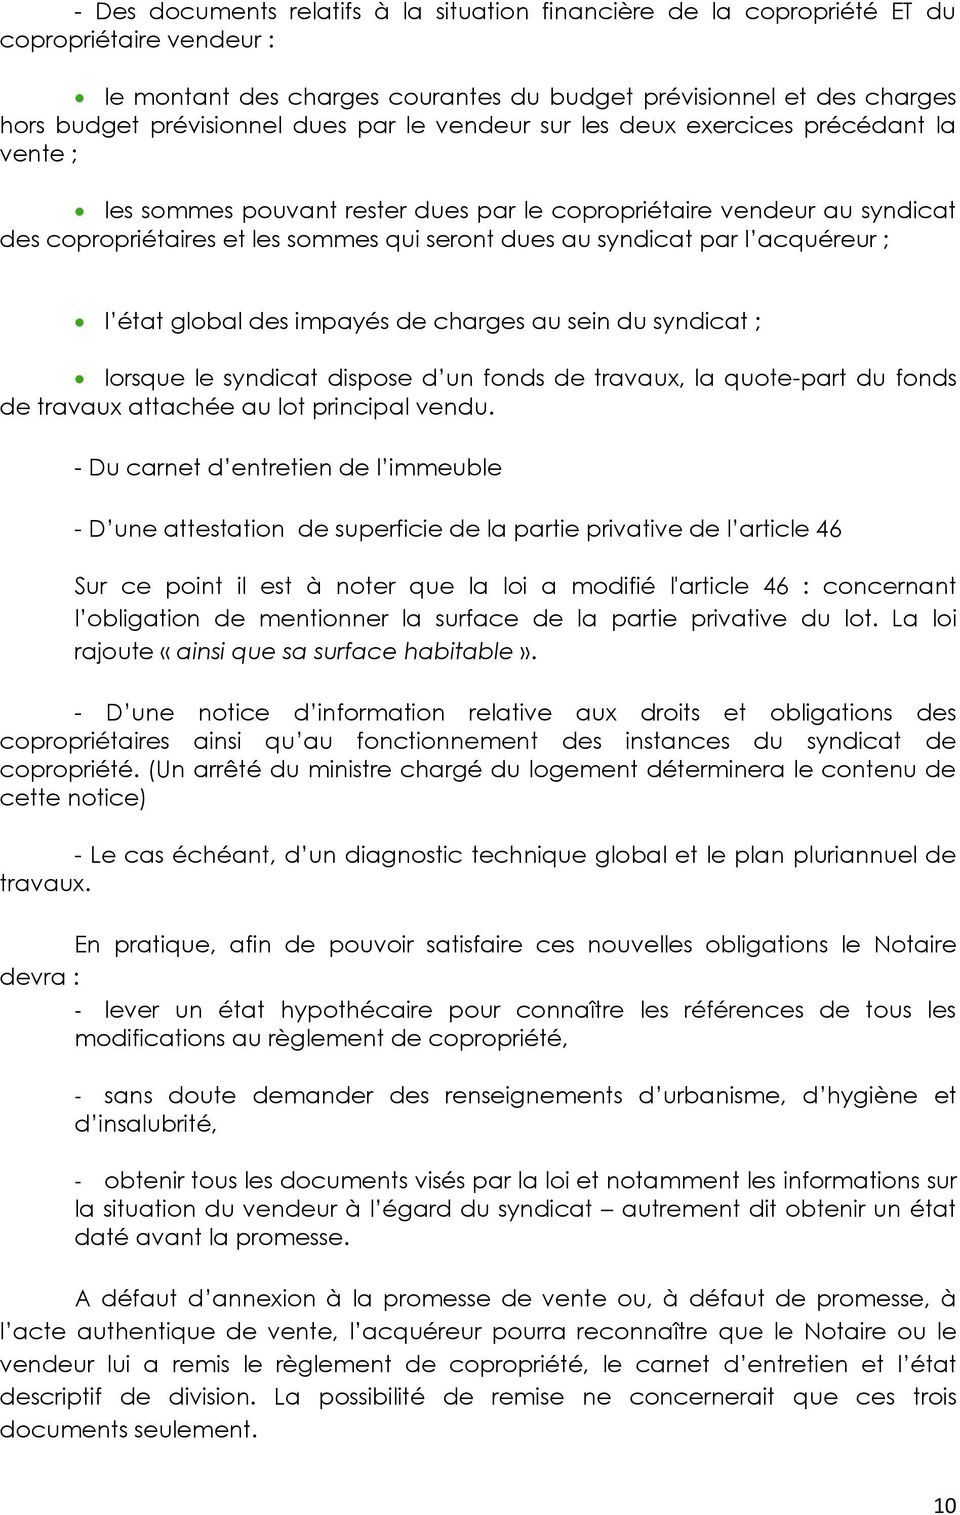 par l acquéreur ; l état global des impayés de charges au sein du syndicat ; lorsque le syndicat dispose d un fonds de travaux, la quote-part du fonds de travaux attachée au lot principal vendu.